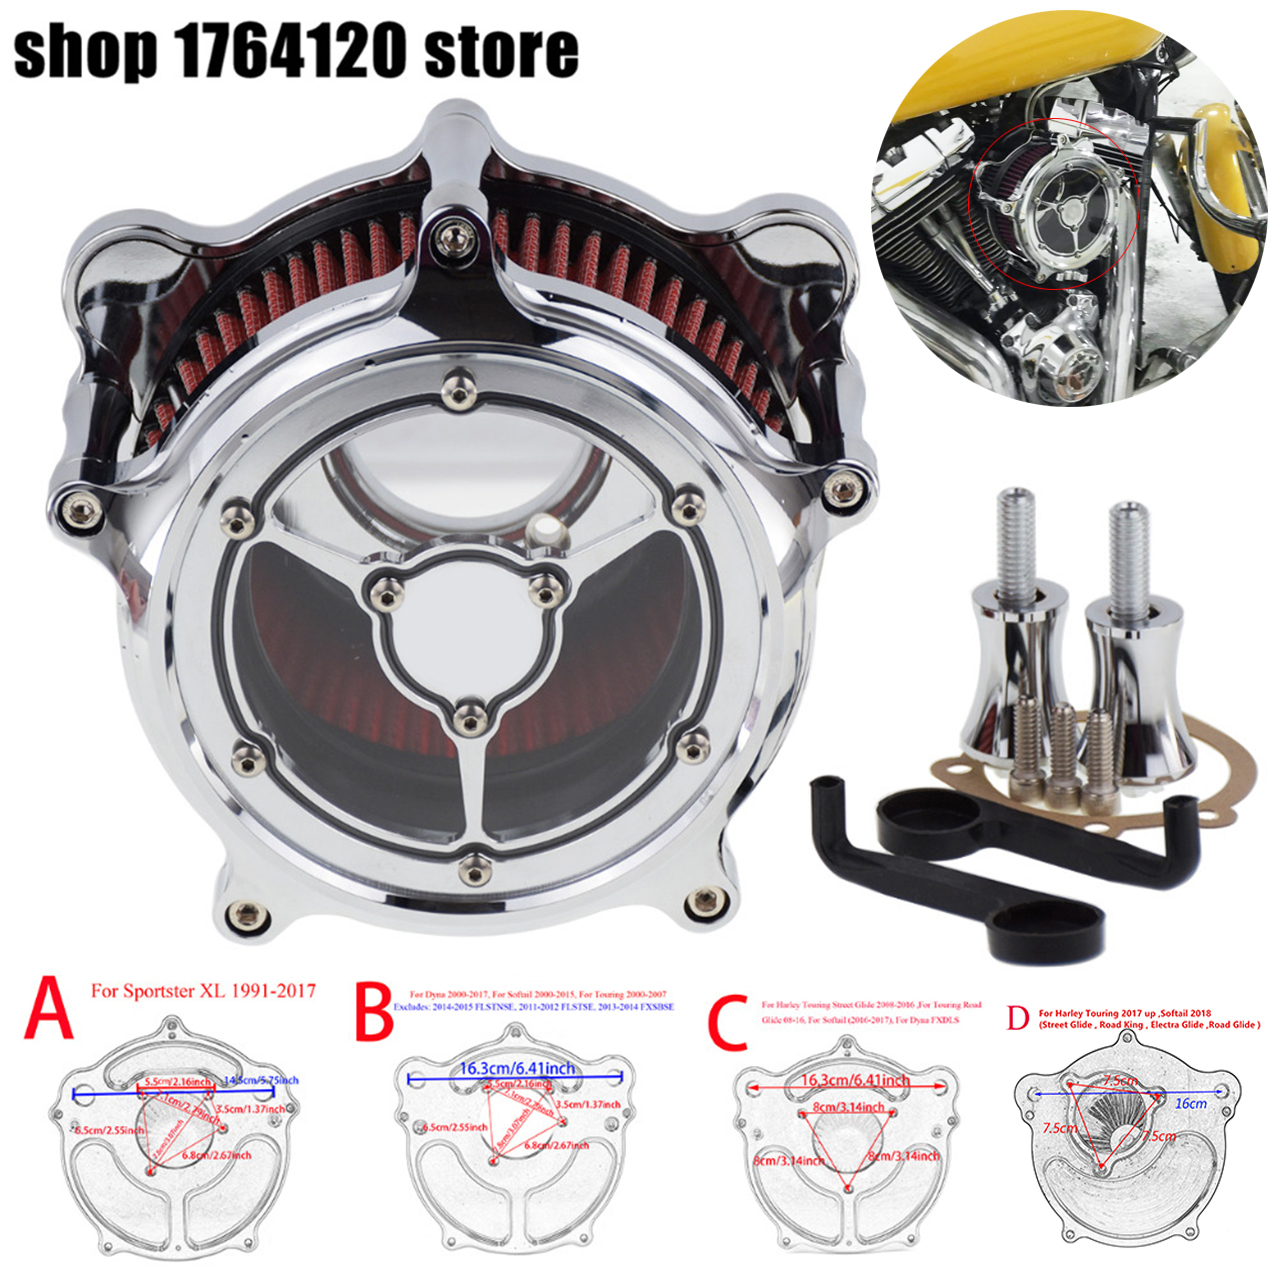 Motorcycle Clarity Air Filter Air Cleaner Intake Kit Chrome For Harley Sportster Dyna Touring Street Glide